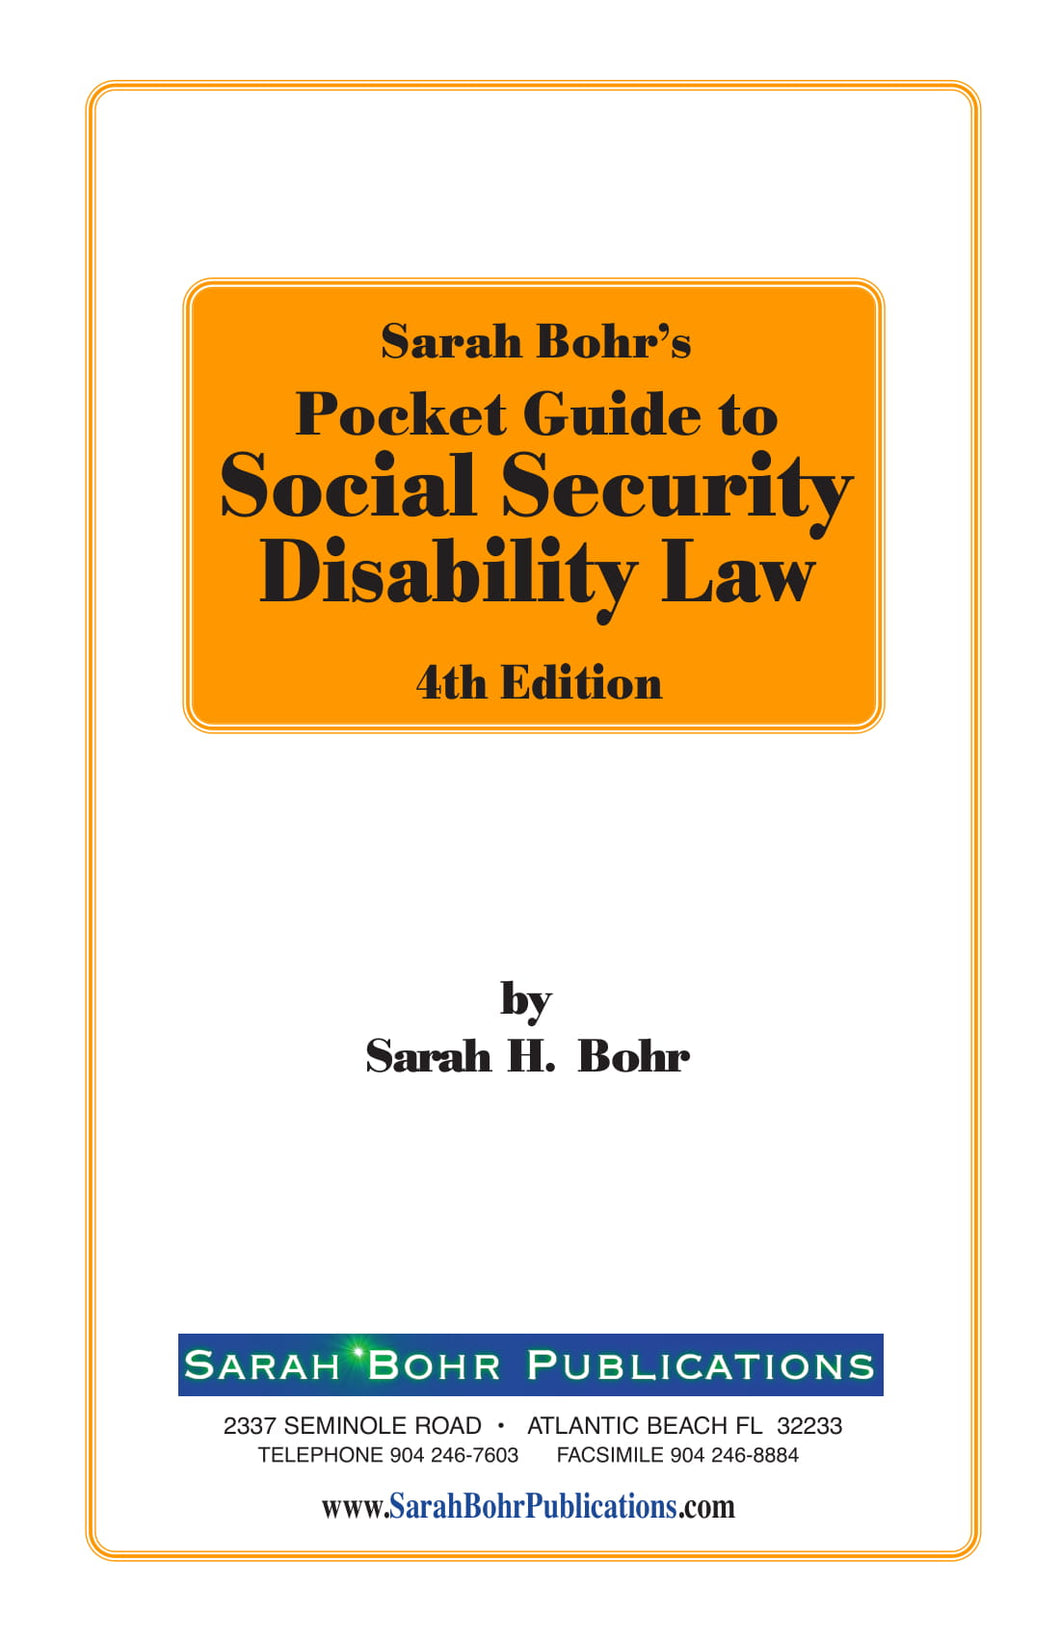 Pocket Guide to Disability Rulings 4th Edition (Digital Download + Physical Book)